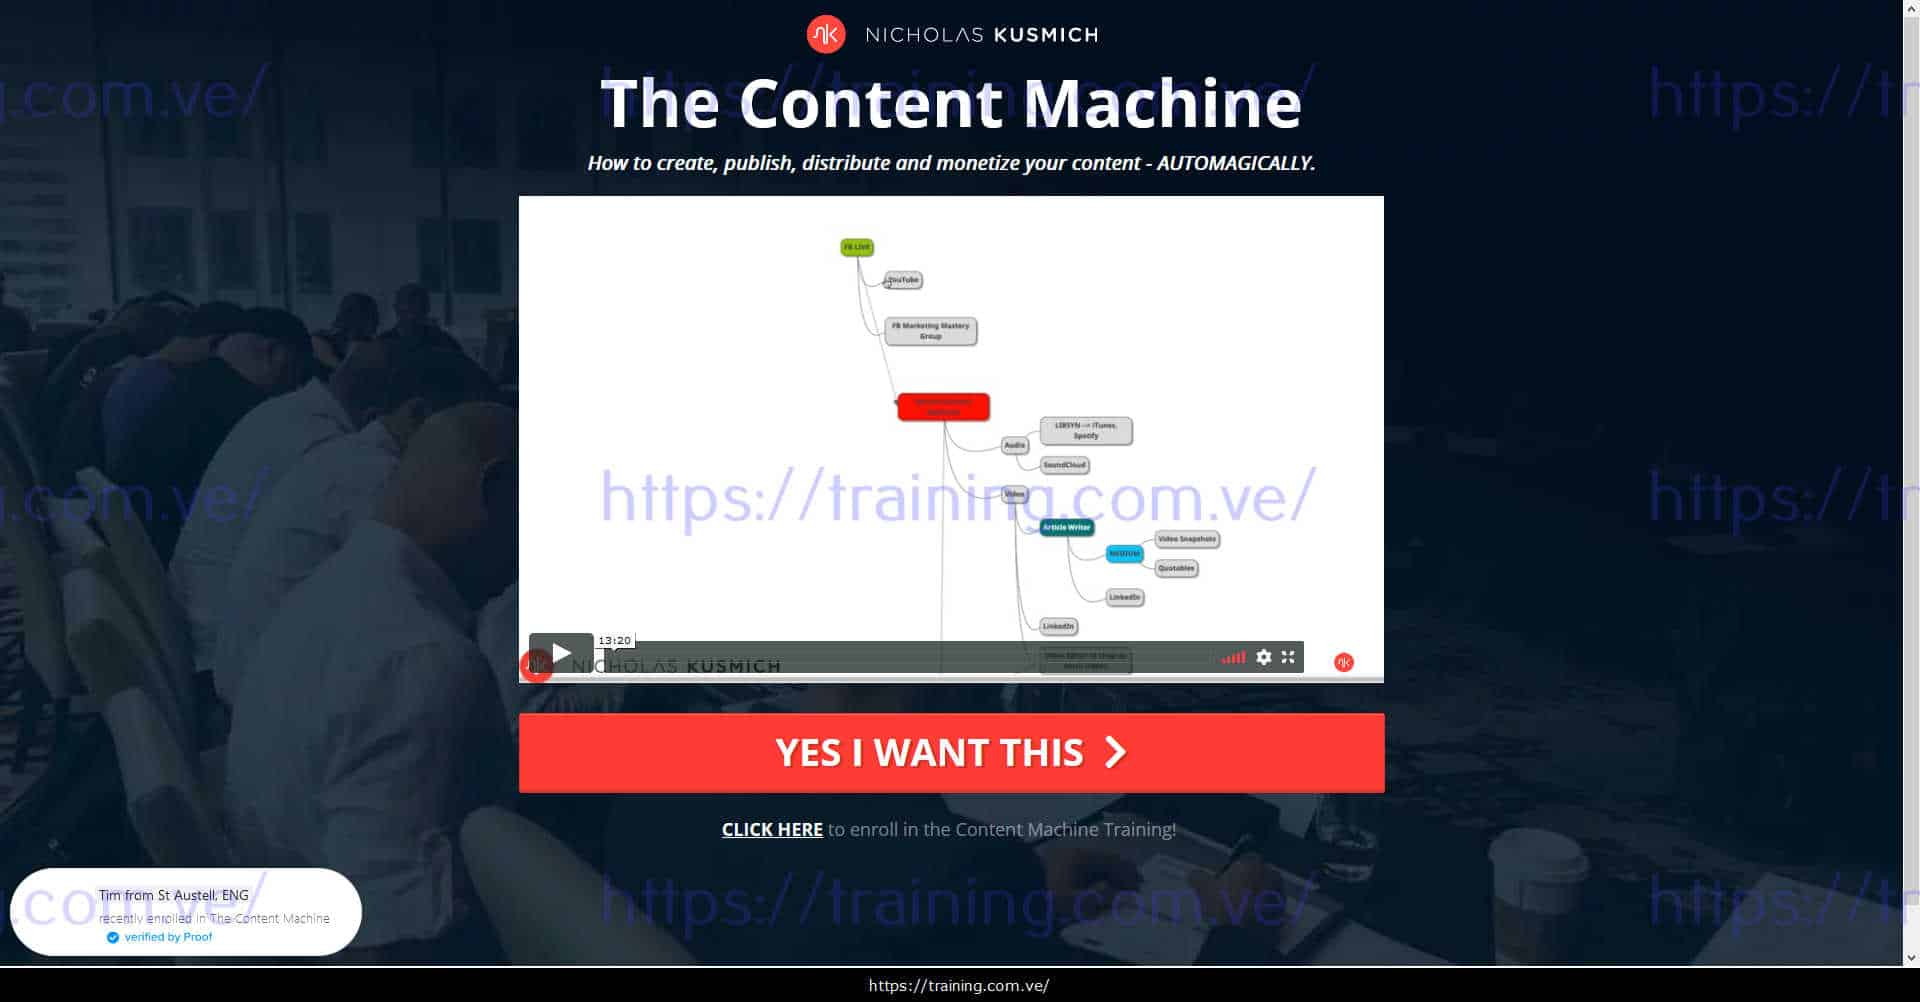 The Content Machine by Nicholas Kusmich Buy